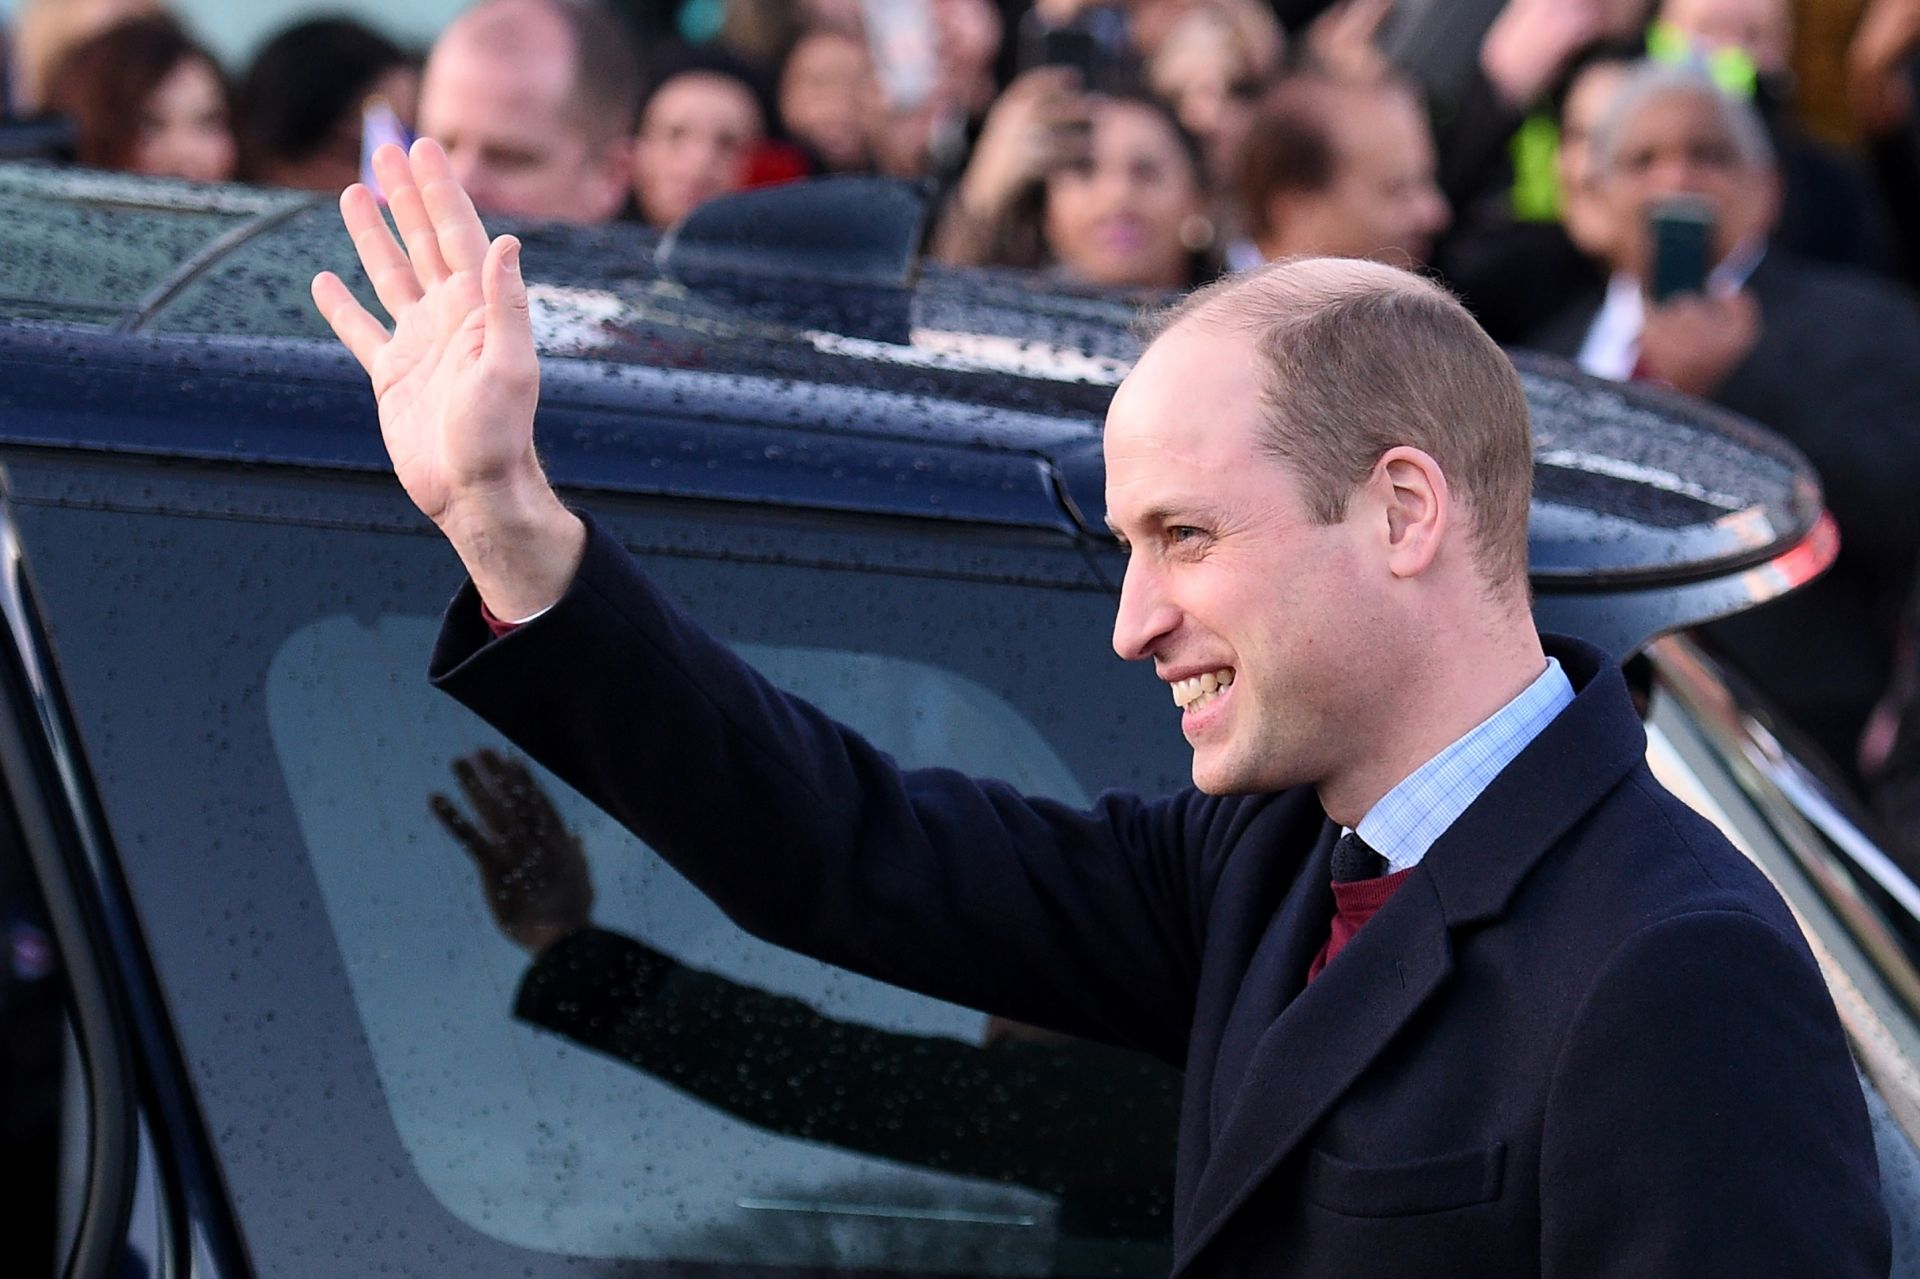 (FILES) In this file photo taken on January 15, 2020 Britain's Prince William, Duke of Cambridge gestures as he leaves after a visit to the Khidmat Centre, Bradford to learn about the activities and workshops offered by the centre. - The prestigious TED talks series is to hold its first-ever free live event next month, with Prince William and other prominent figures calling for action on climate change, the group announced September 14, 2020. (Photo by Oli SCARFF / AFP)